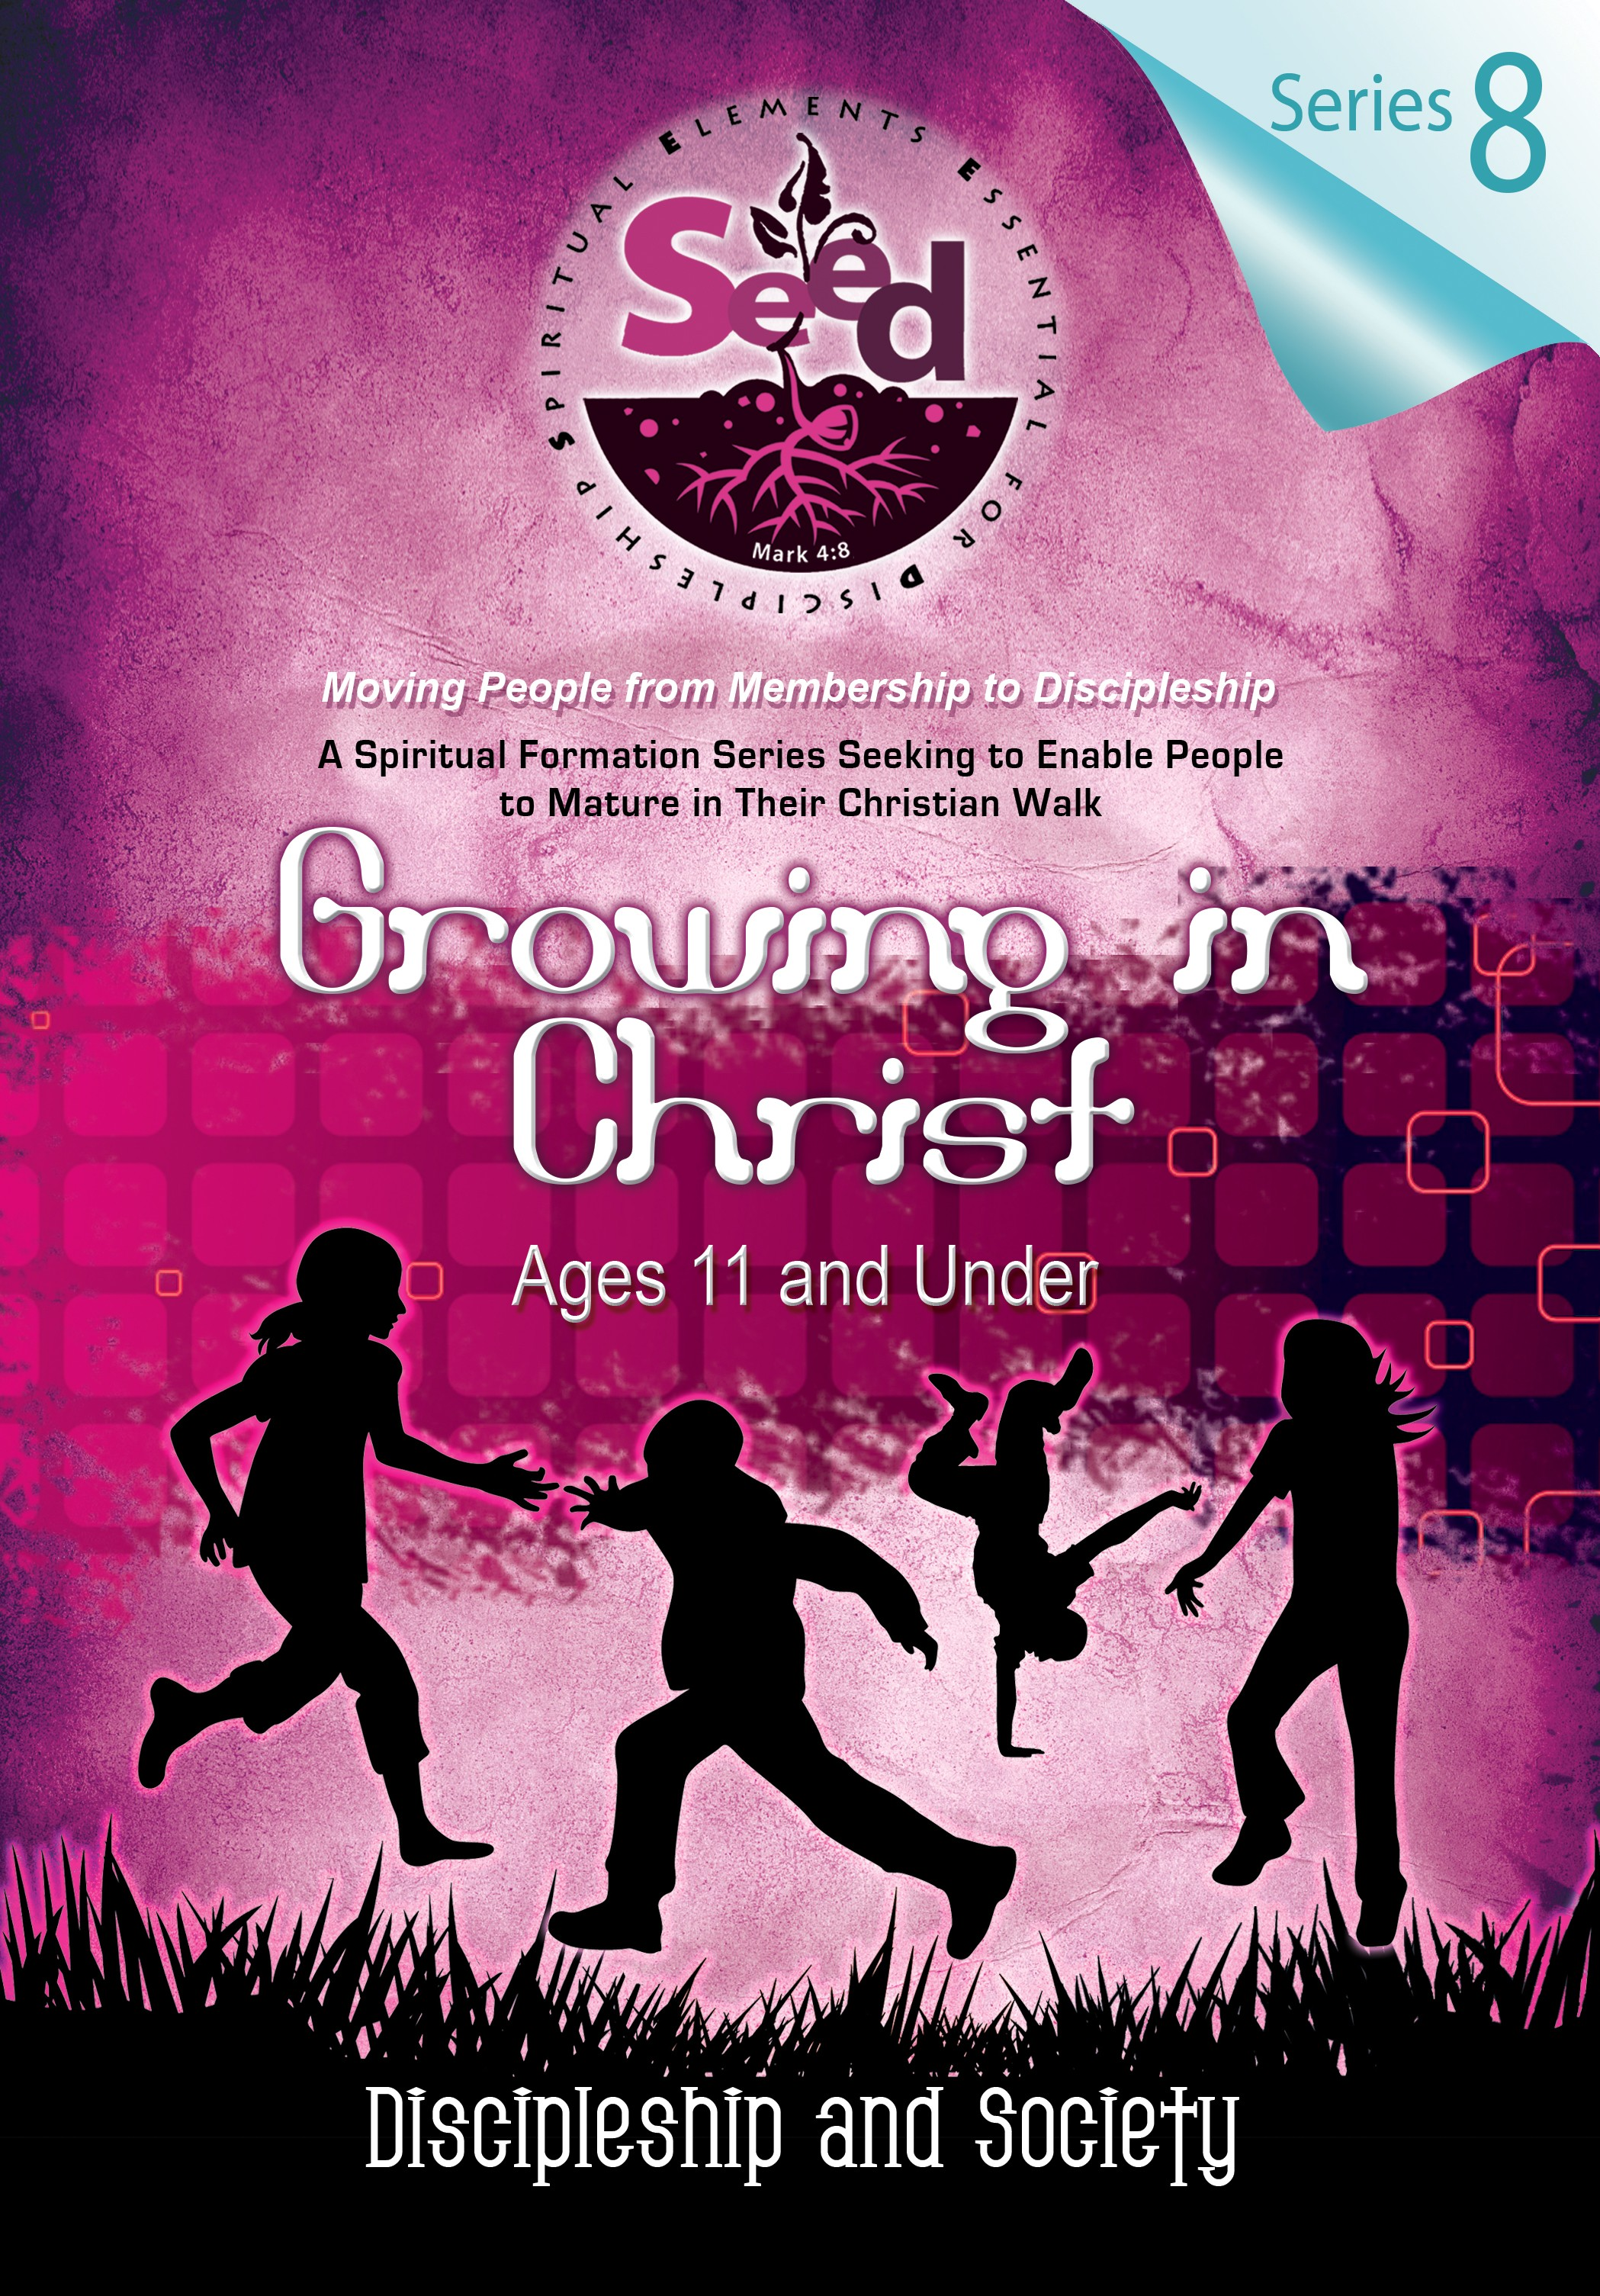 SEED Growing in Christ (Ages 11 and Under): Series 8: Discipleship and Civic Duty